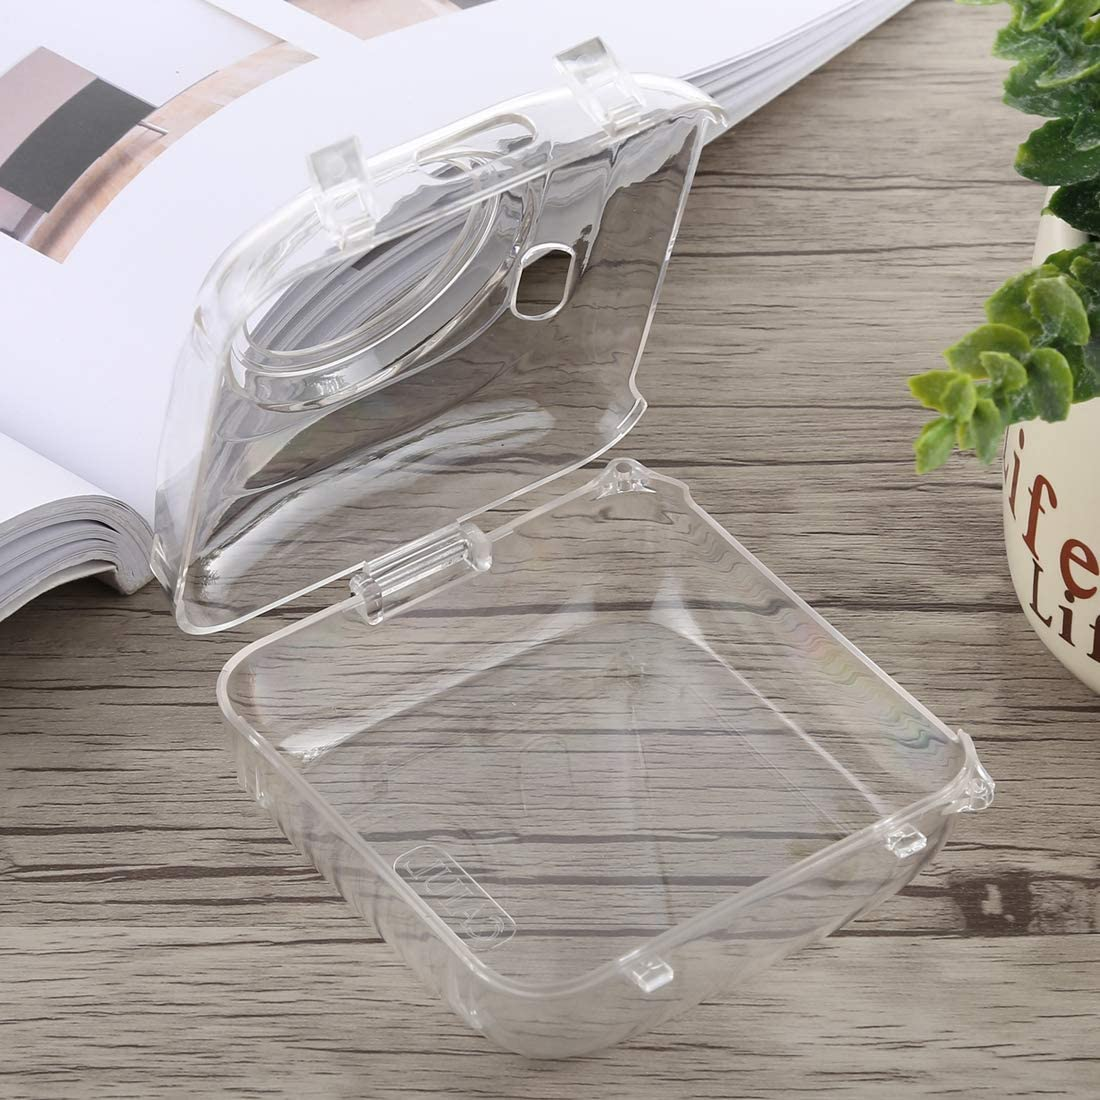 Color : Transparent Transparent Goodao Protective Crystal Shell Case with Strap for PAPERANG Printer